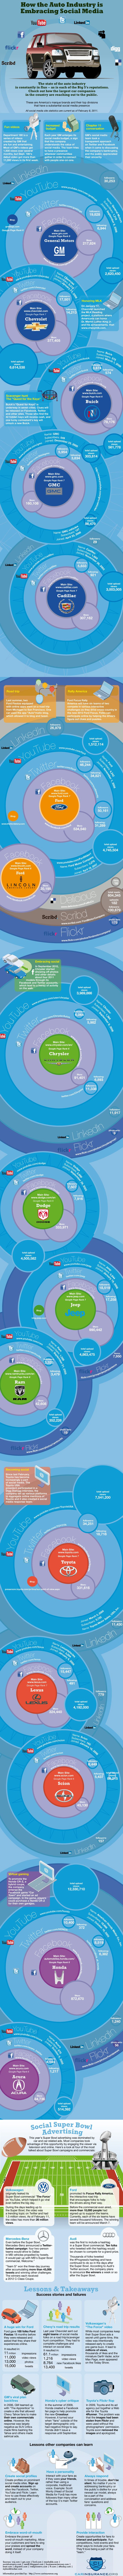 How the Auto Industry is Embracing Social Media